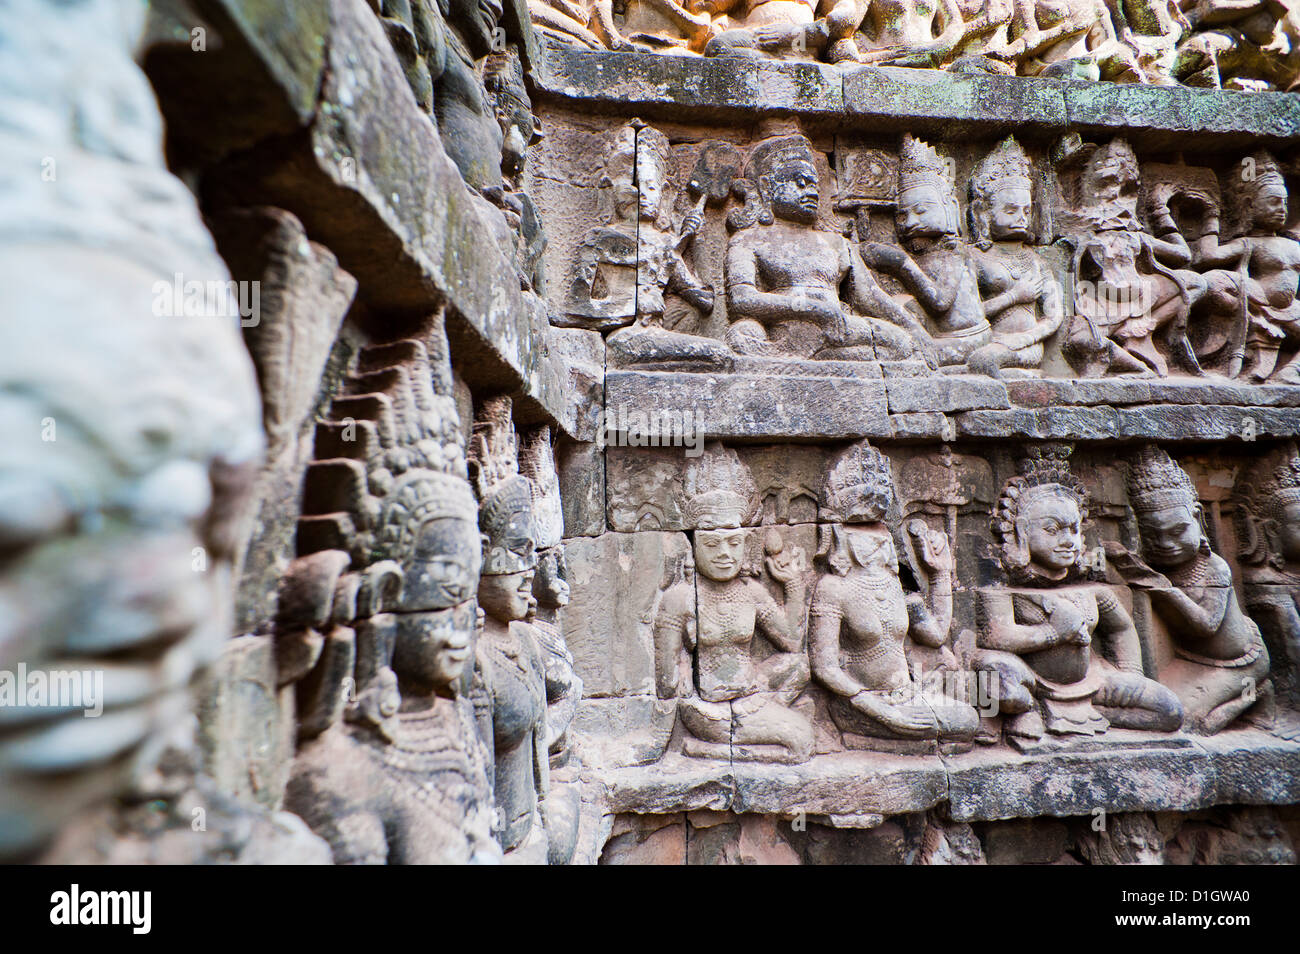 Bas relief stone carvings at the Terrace of the Leper King, Angkor Thom, Siem Reap Province, Cambodia, Indochina, - Stock Image